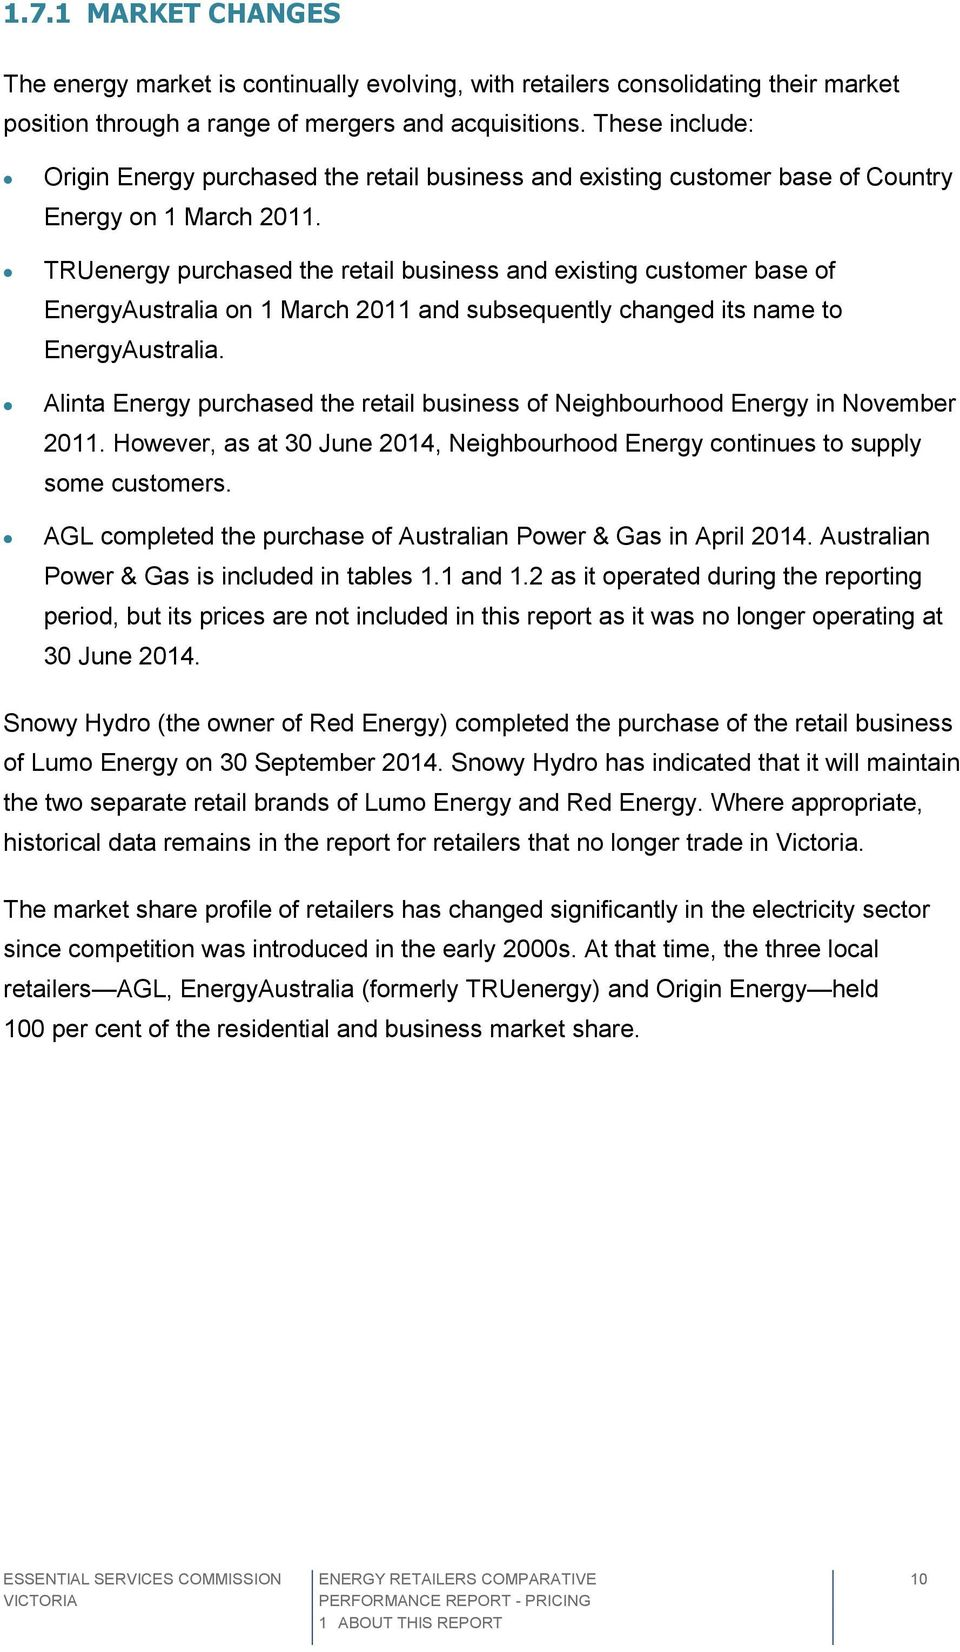 TRUenergy purchased the retail business and existing customer base of EnergyAustralia on 1 March 2011 and subsequently changed its name to EnergyAustralia.